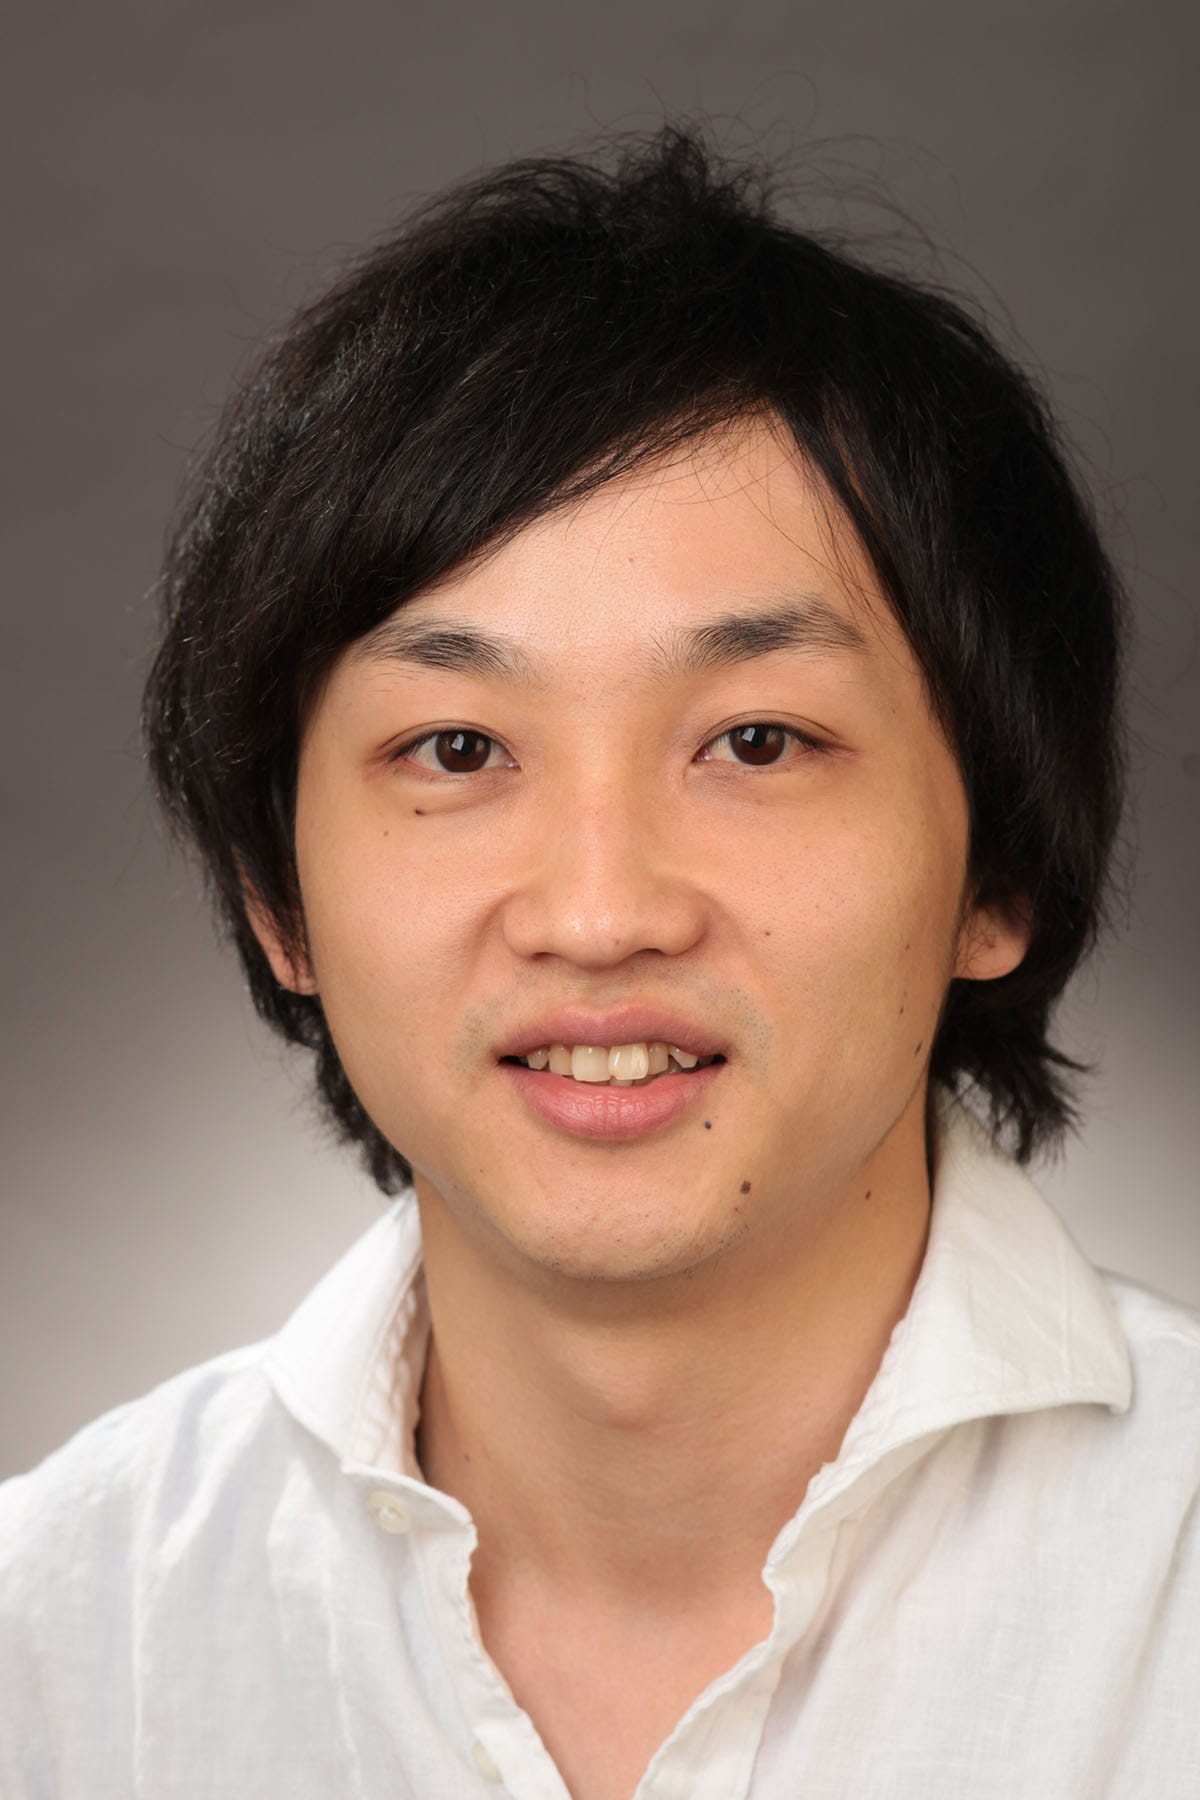 A photo of Takanori Takebe.